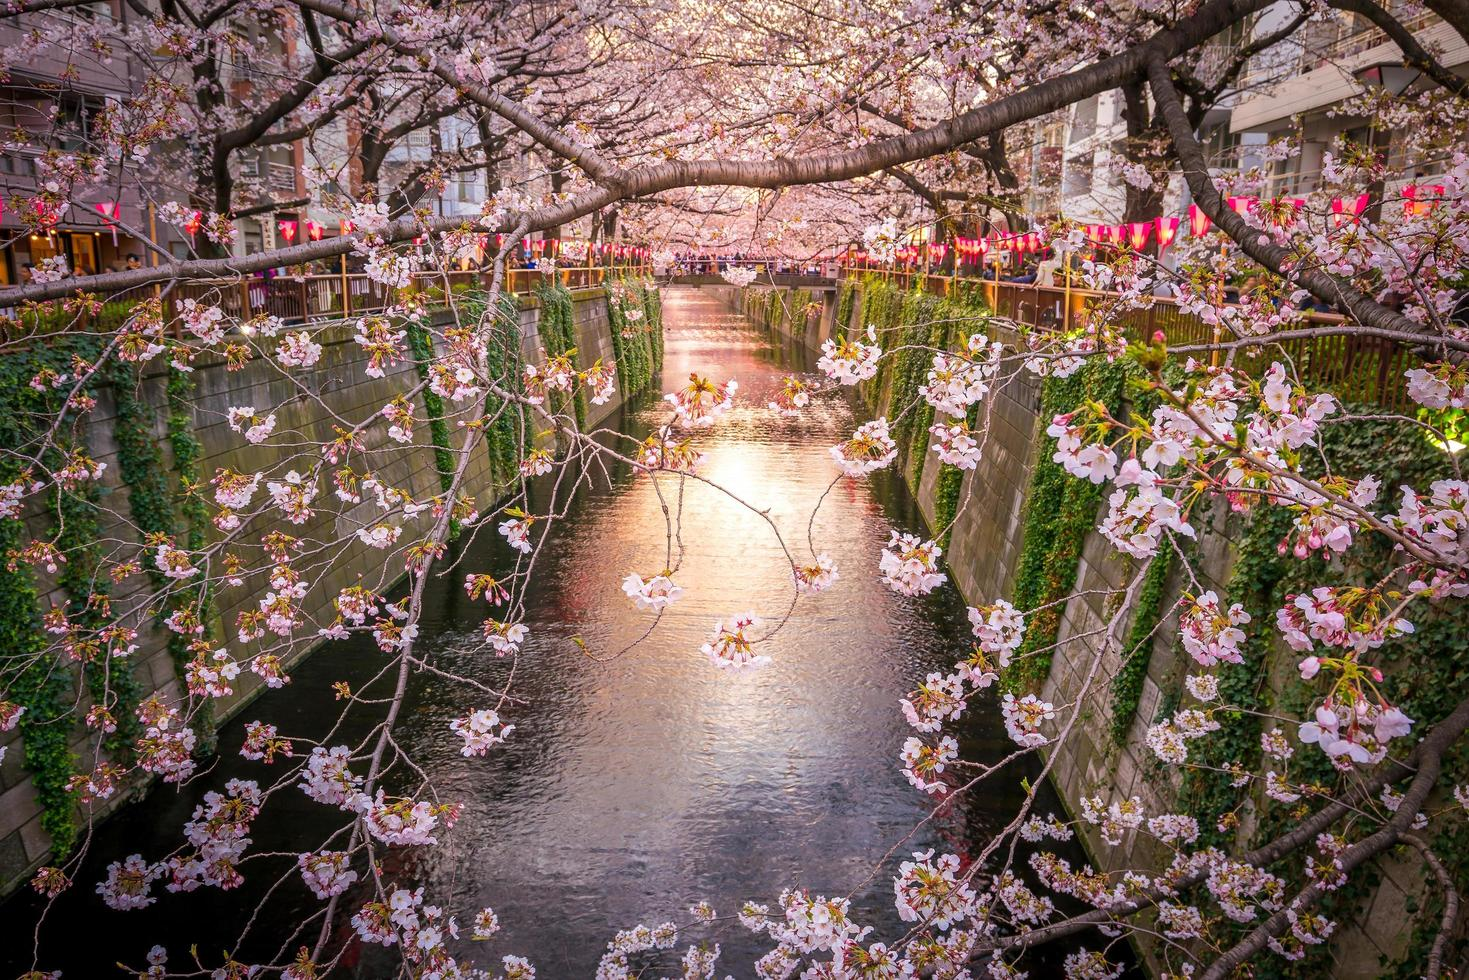 Cherry blossom at Meguro Canal in Tokyo, Japan photo